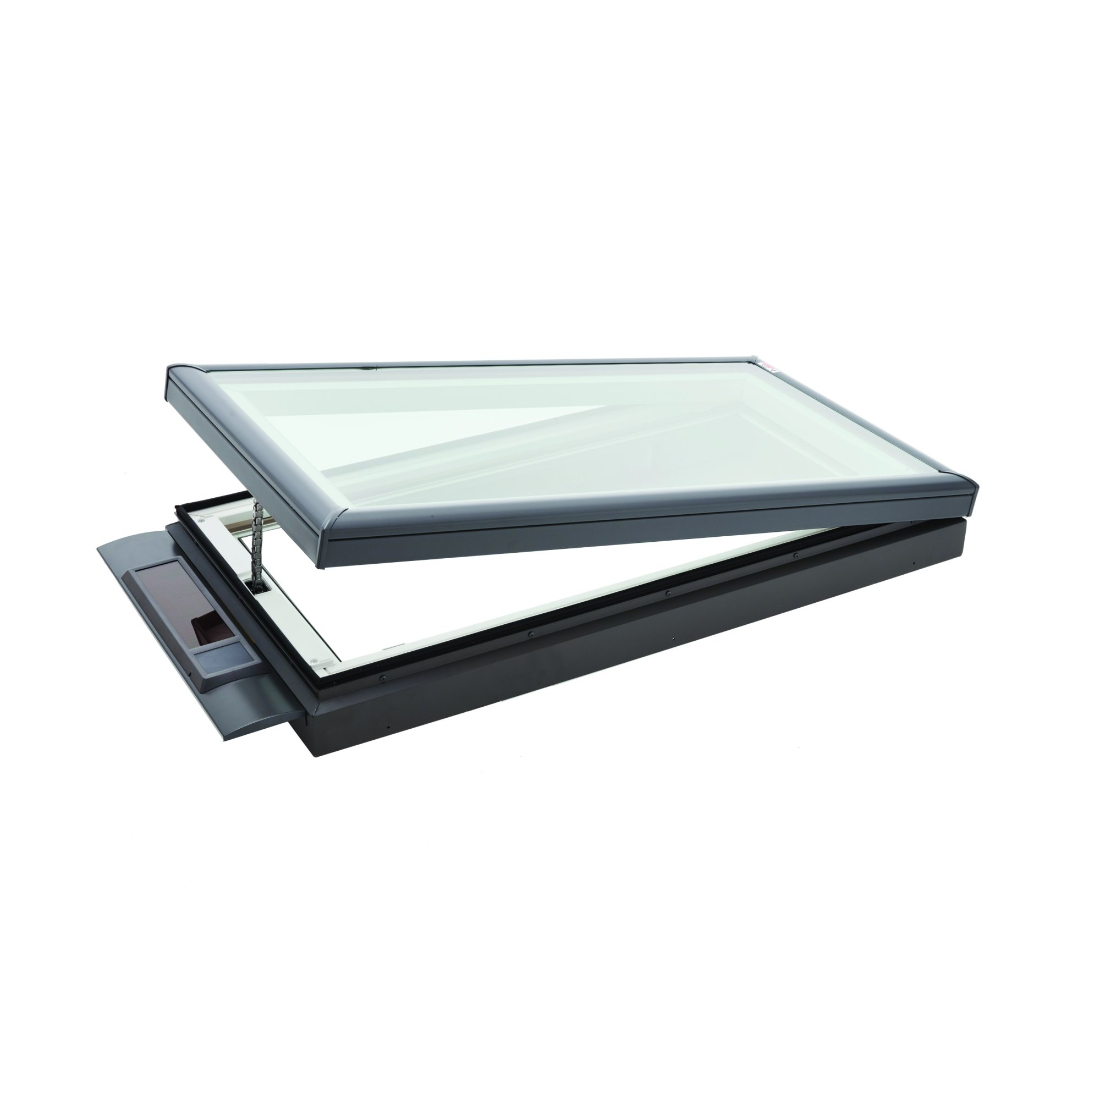 Low Pitch Solar Opening Skylight 692 x 692mm